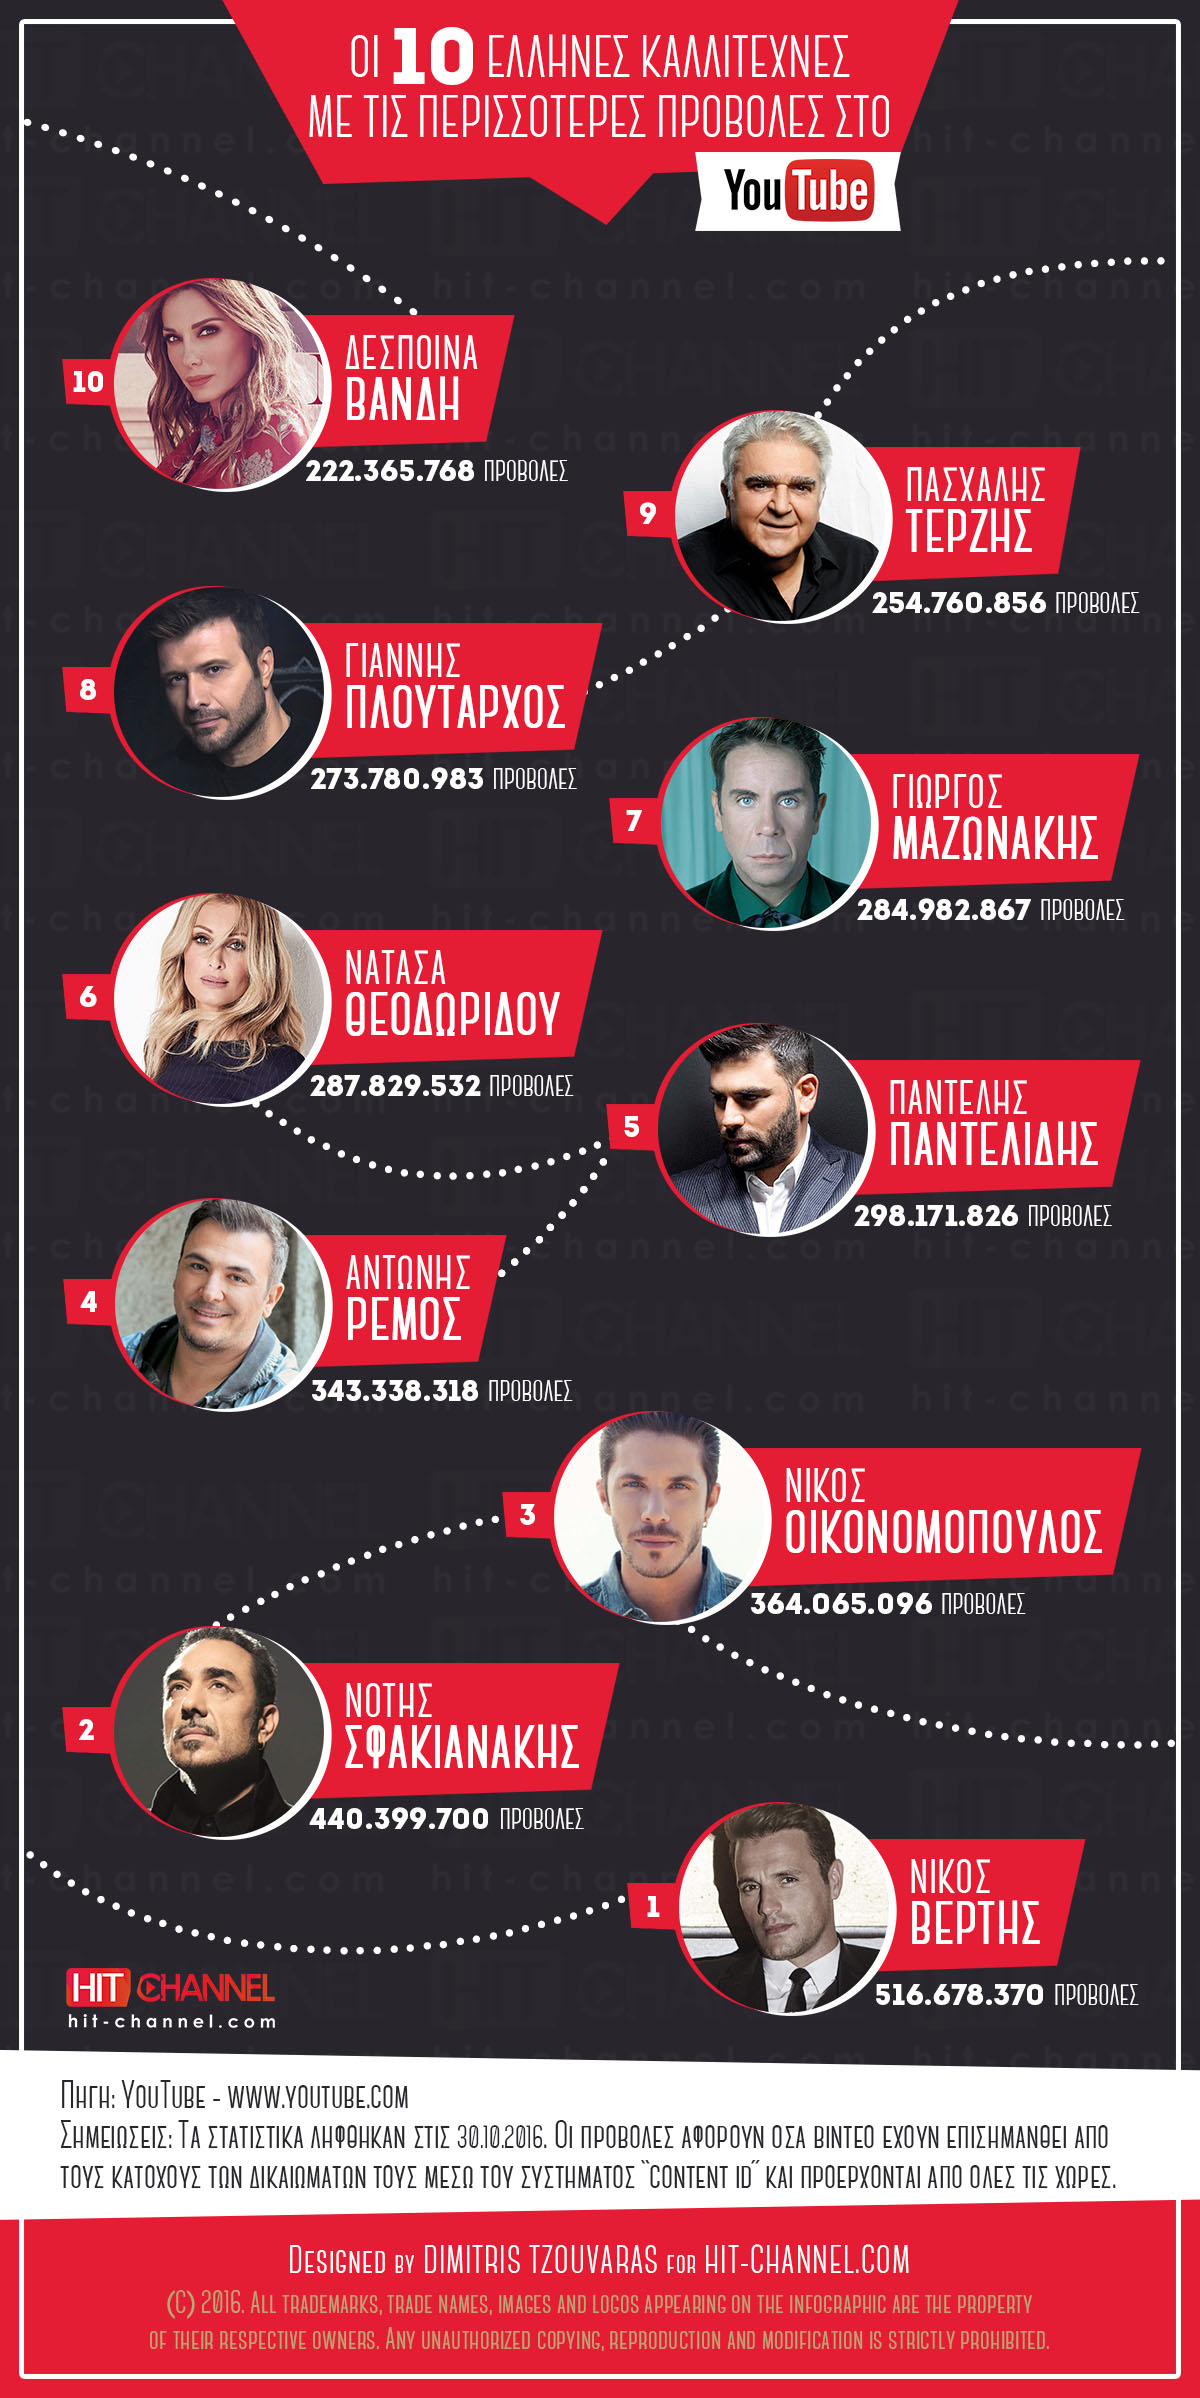 10-most-viewed-greek-artists-on-youtube-infographic